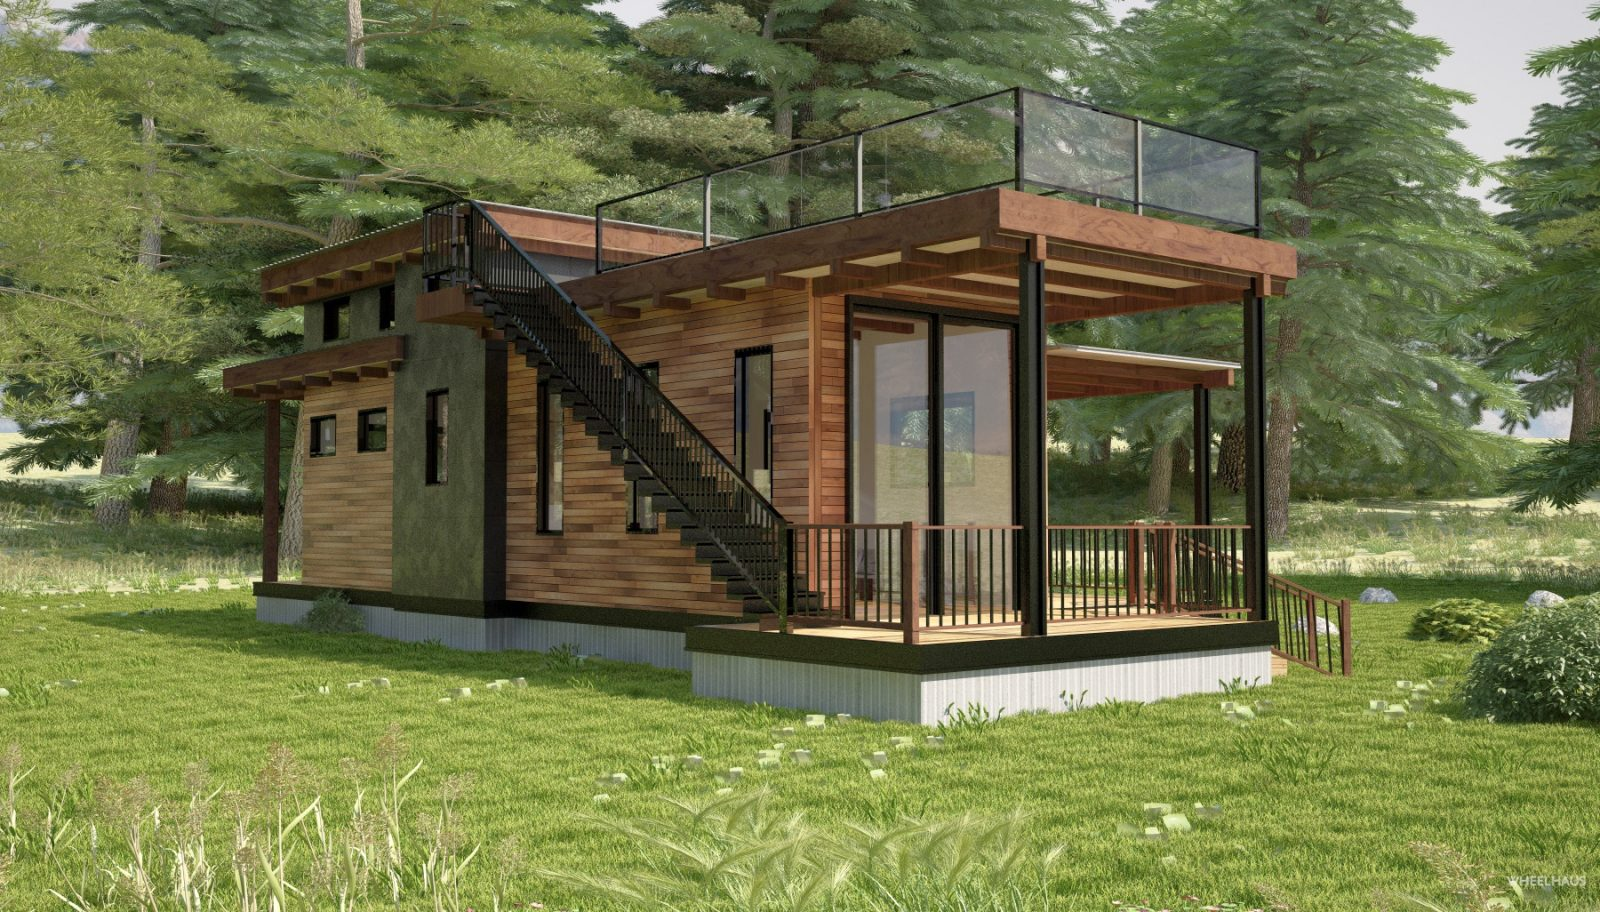 Flat Roof Caboose